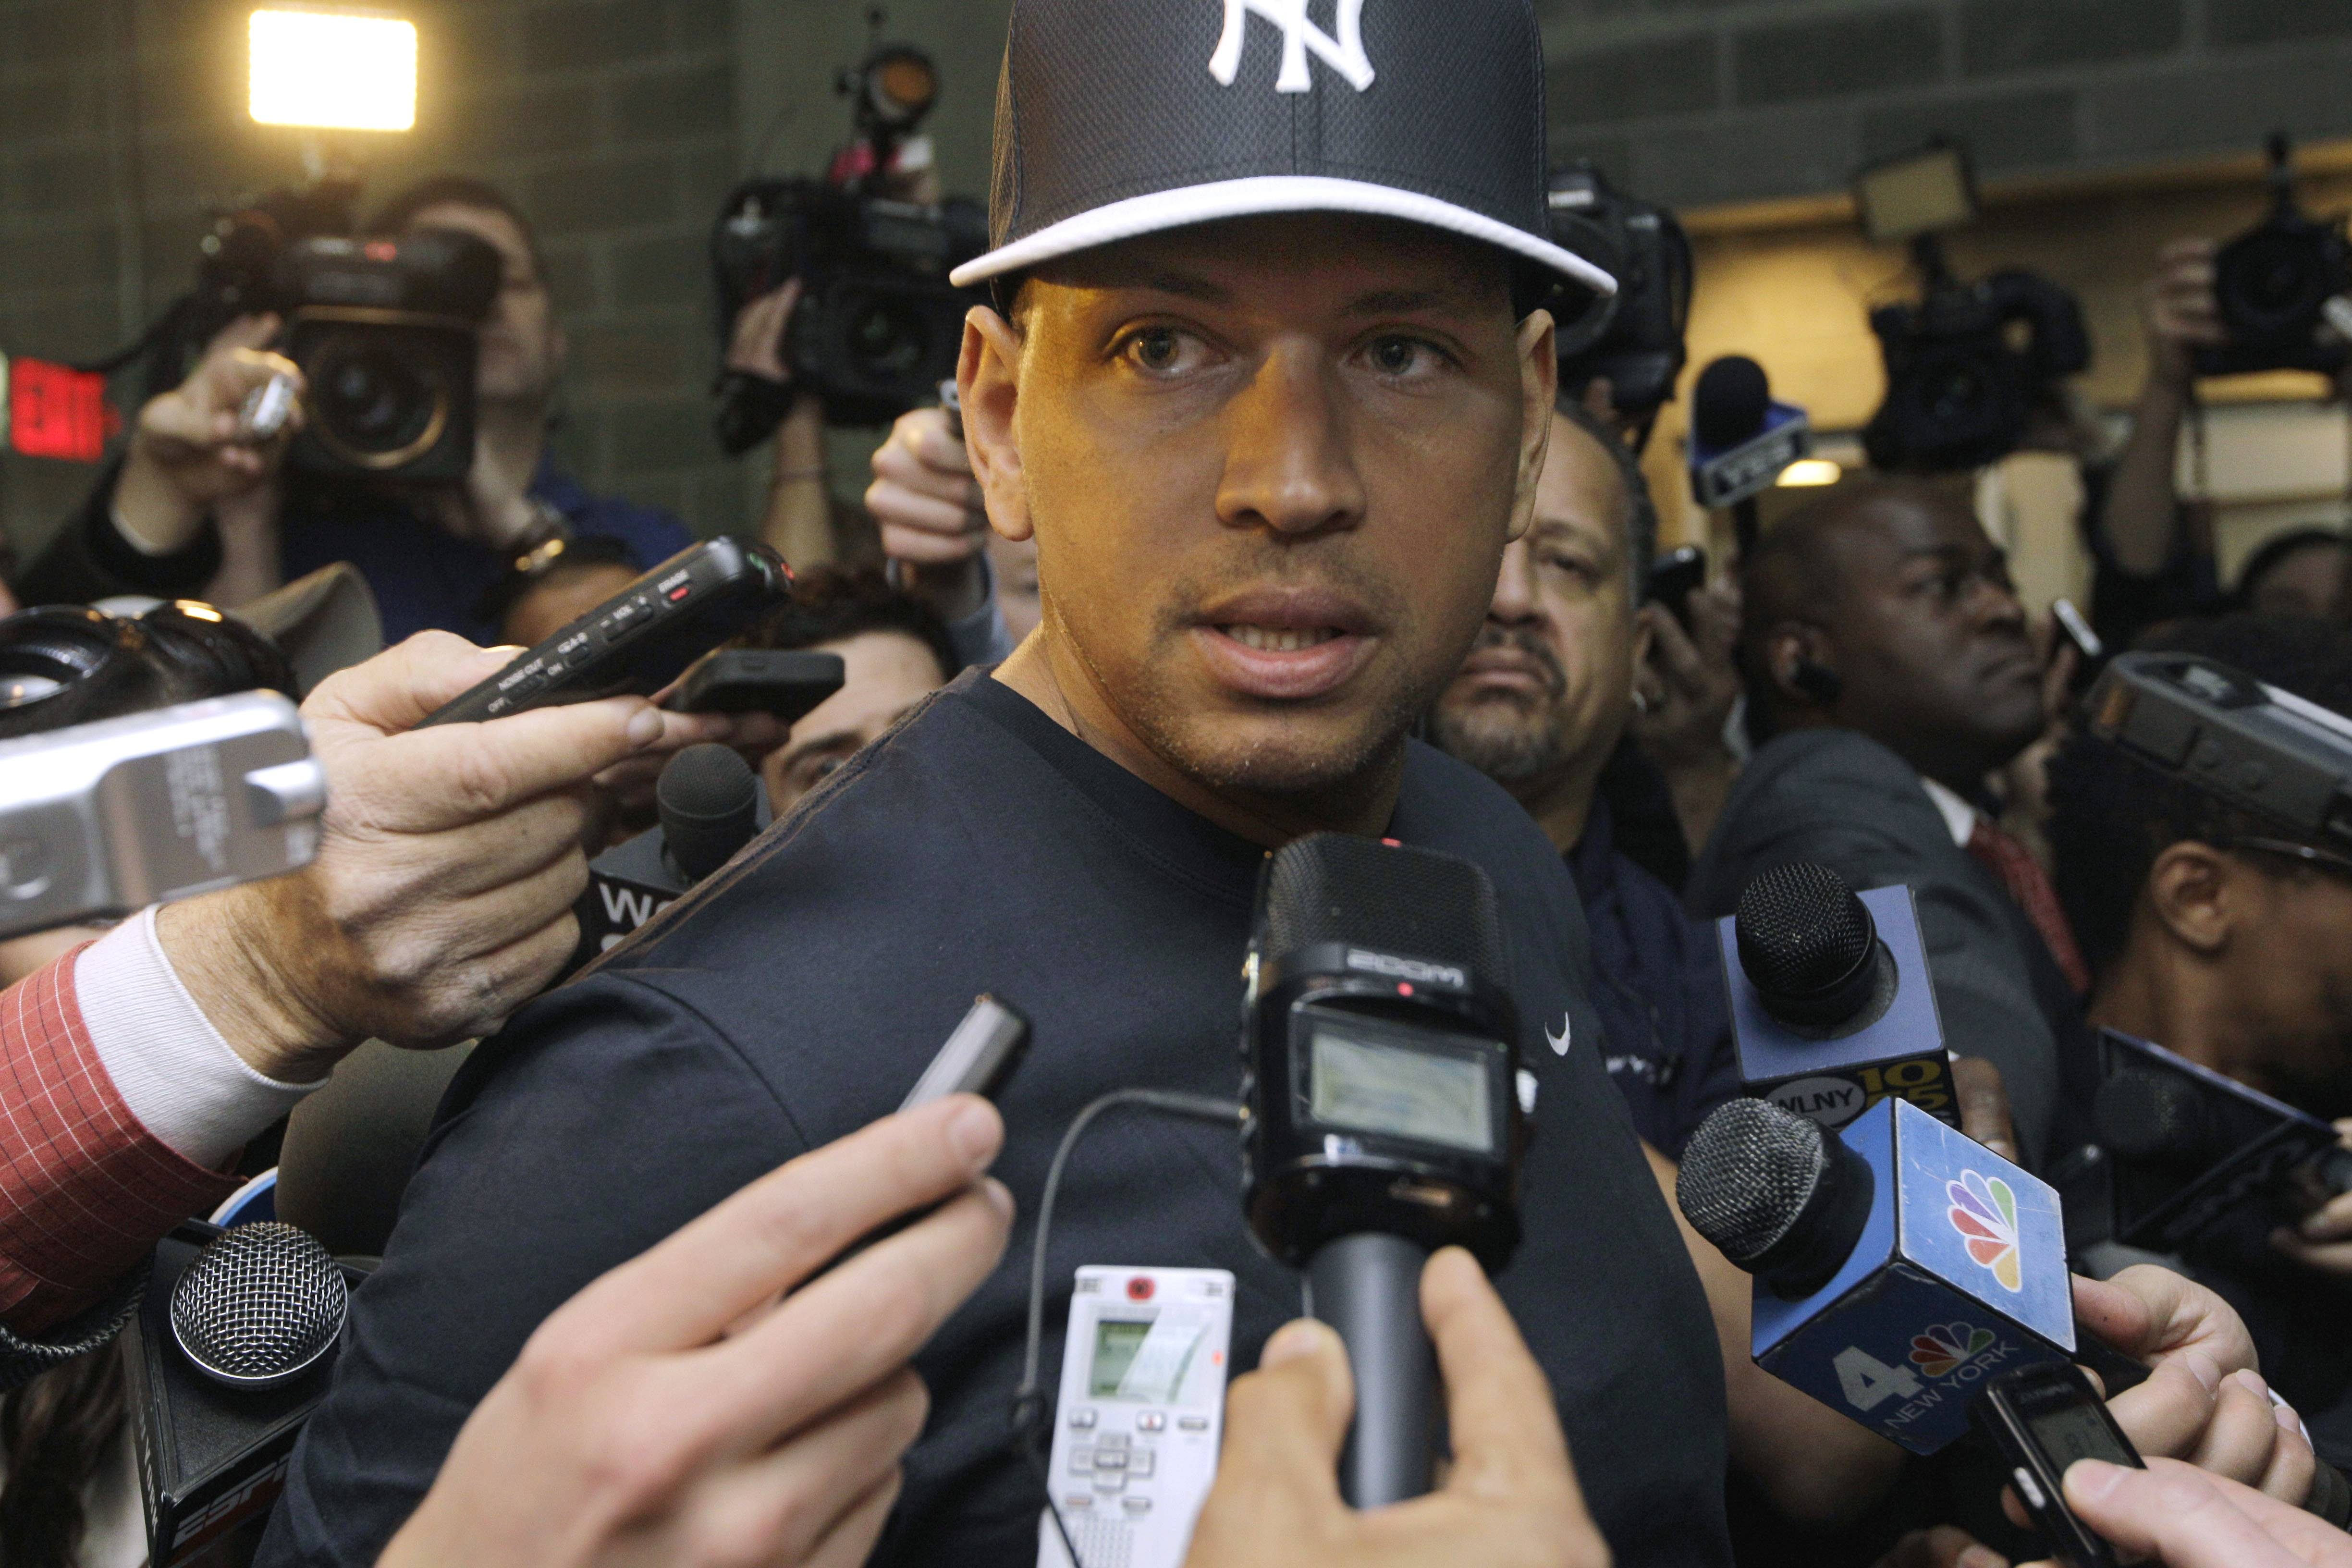 The owner of a now-defunct Florida clinic was charged Tuesday, Aug. 5, 2014, with conspiracy to distribute steroids, more than a year after he was accused of providing performance-enhancing drugs to Yankees star Alex Rodriguez and other players. Federal court records show Anthony Bosch is charged with one count of conspiracy to distribute testosterone.